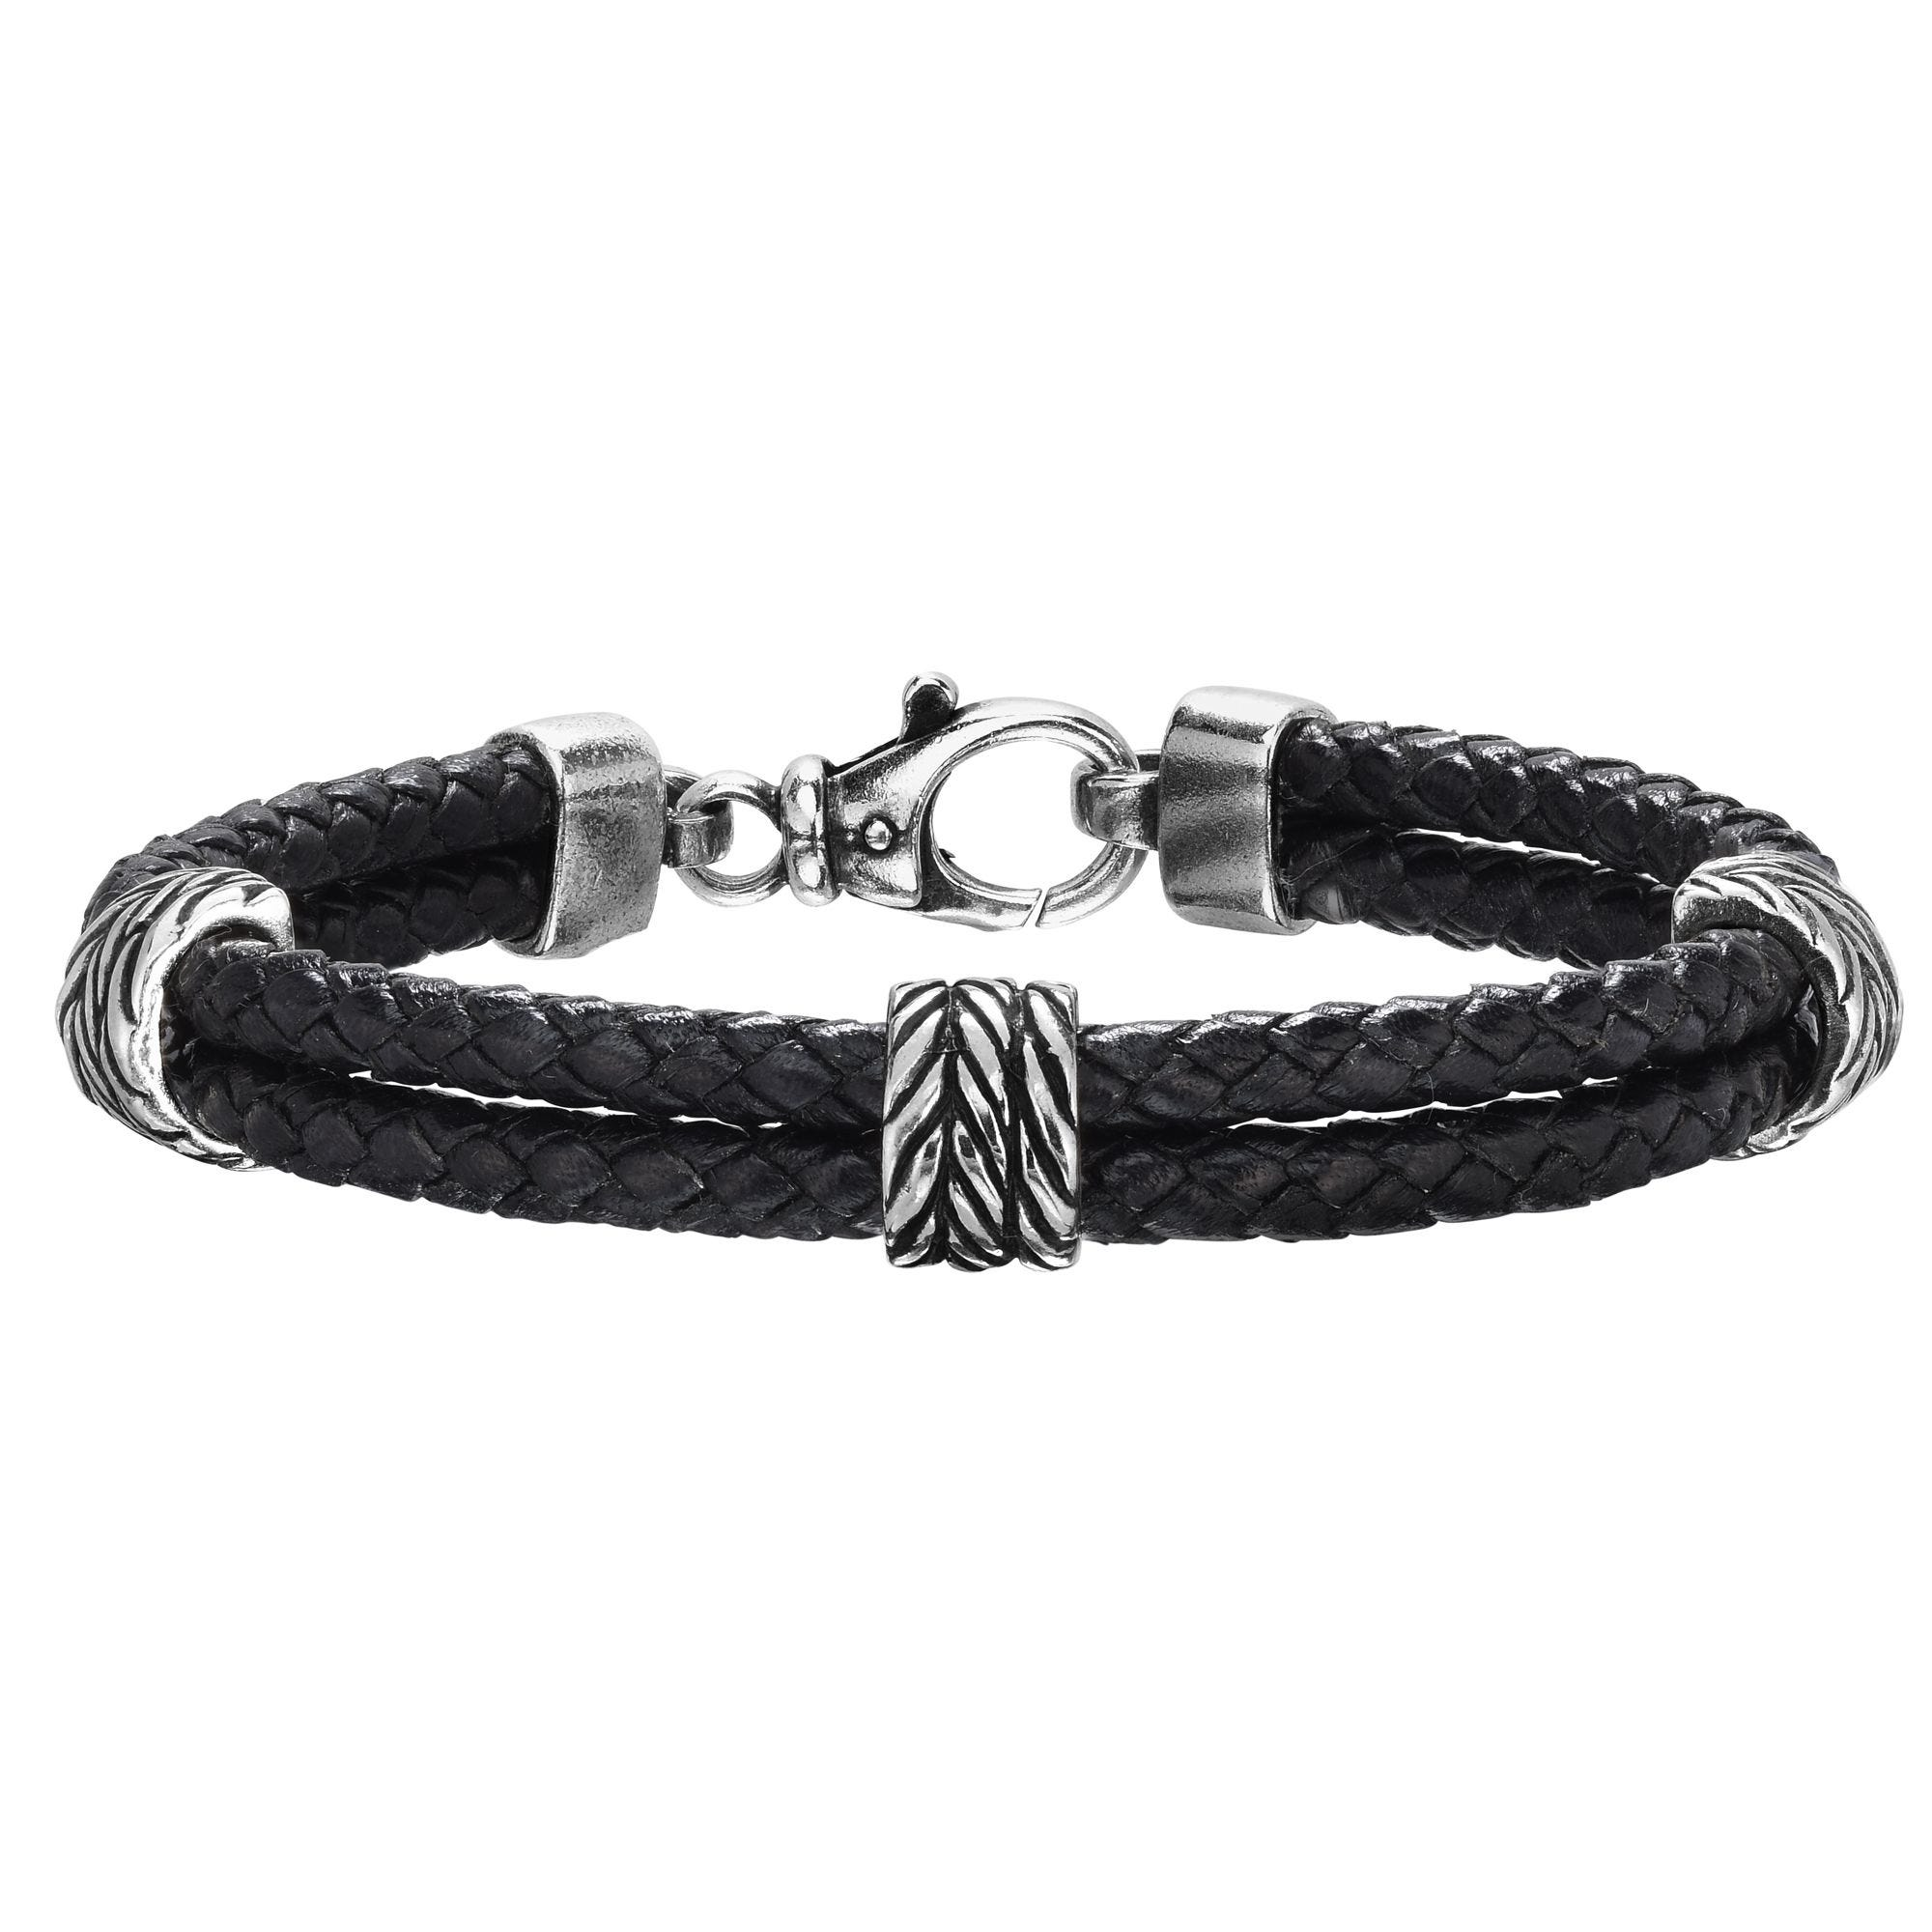 Men's Oxidized Finish Textured Leather Bracelet 8.25